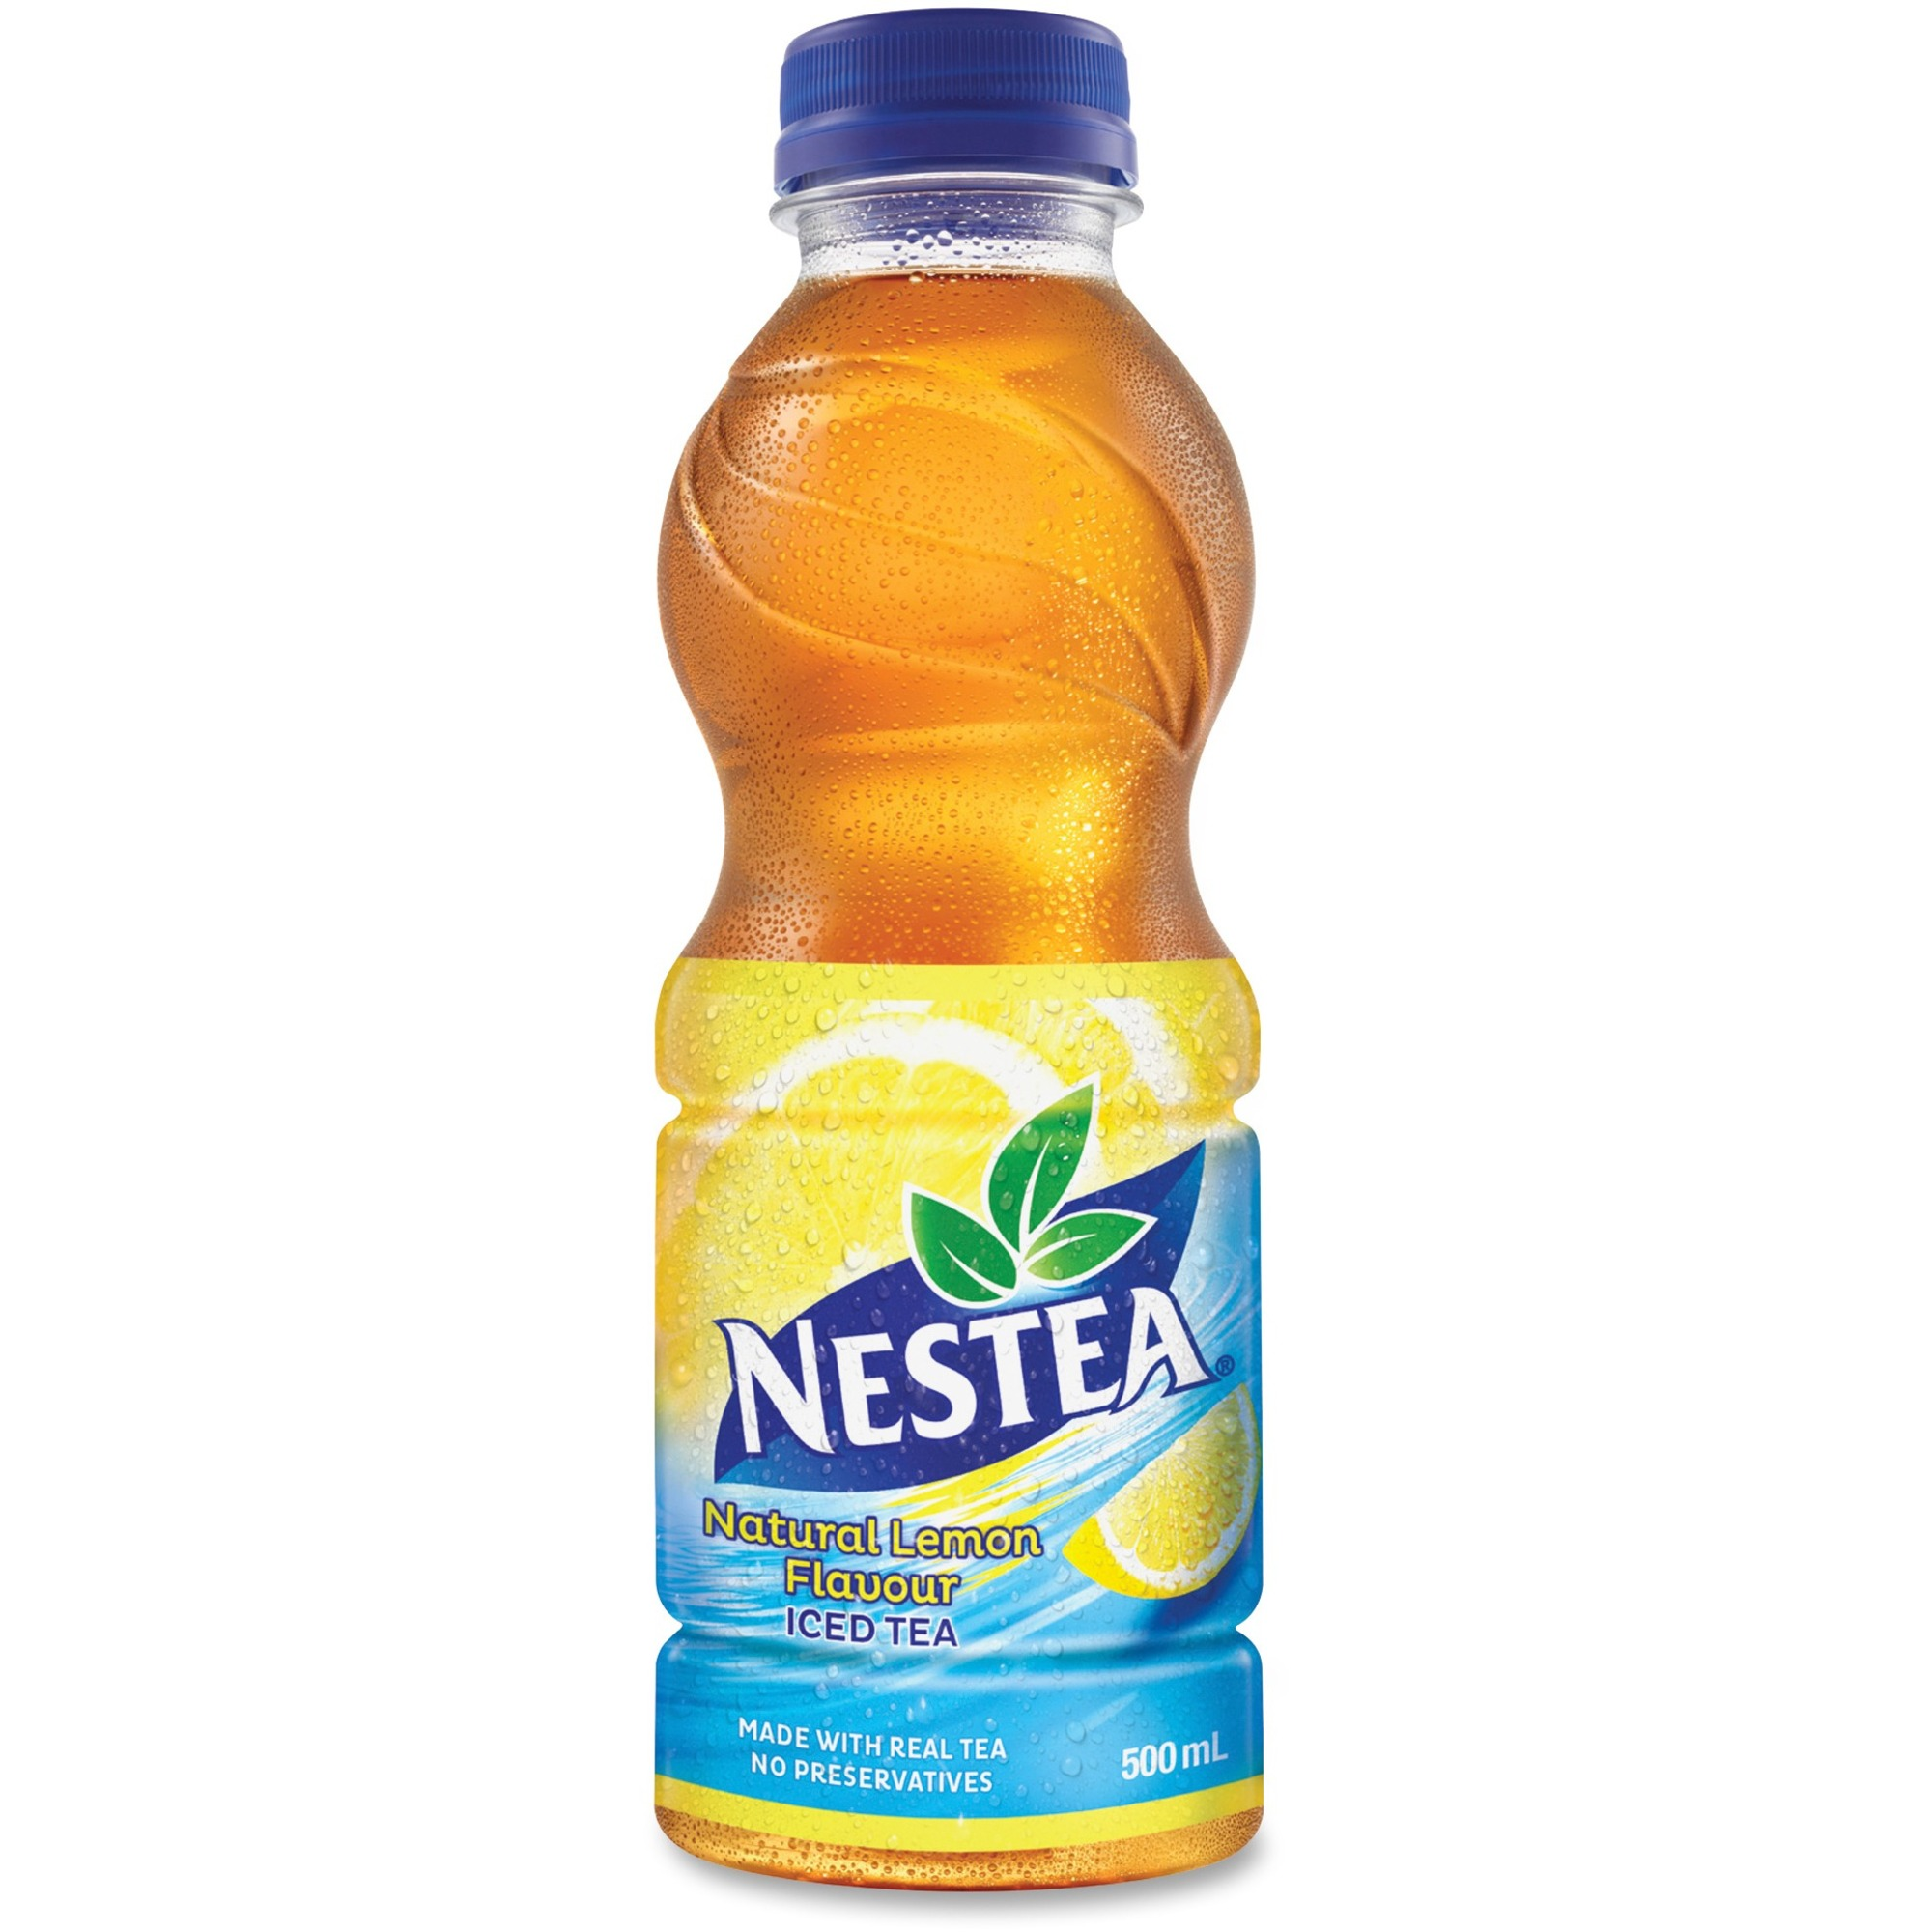 Nestea Natural Lemon Iced Tea Drink - Ready-to-Drink ...